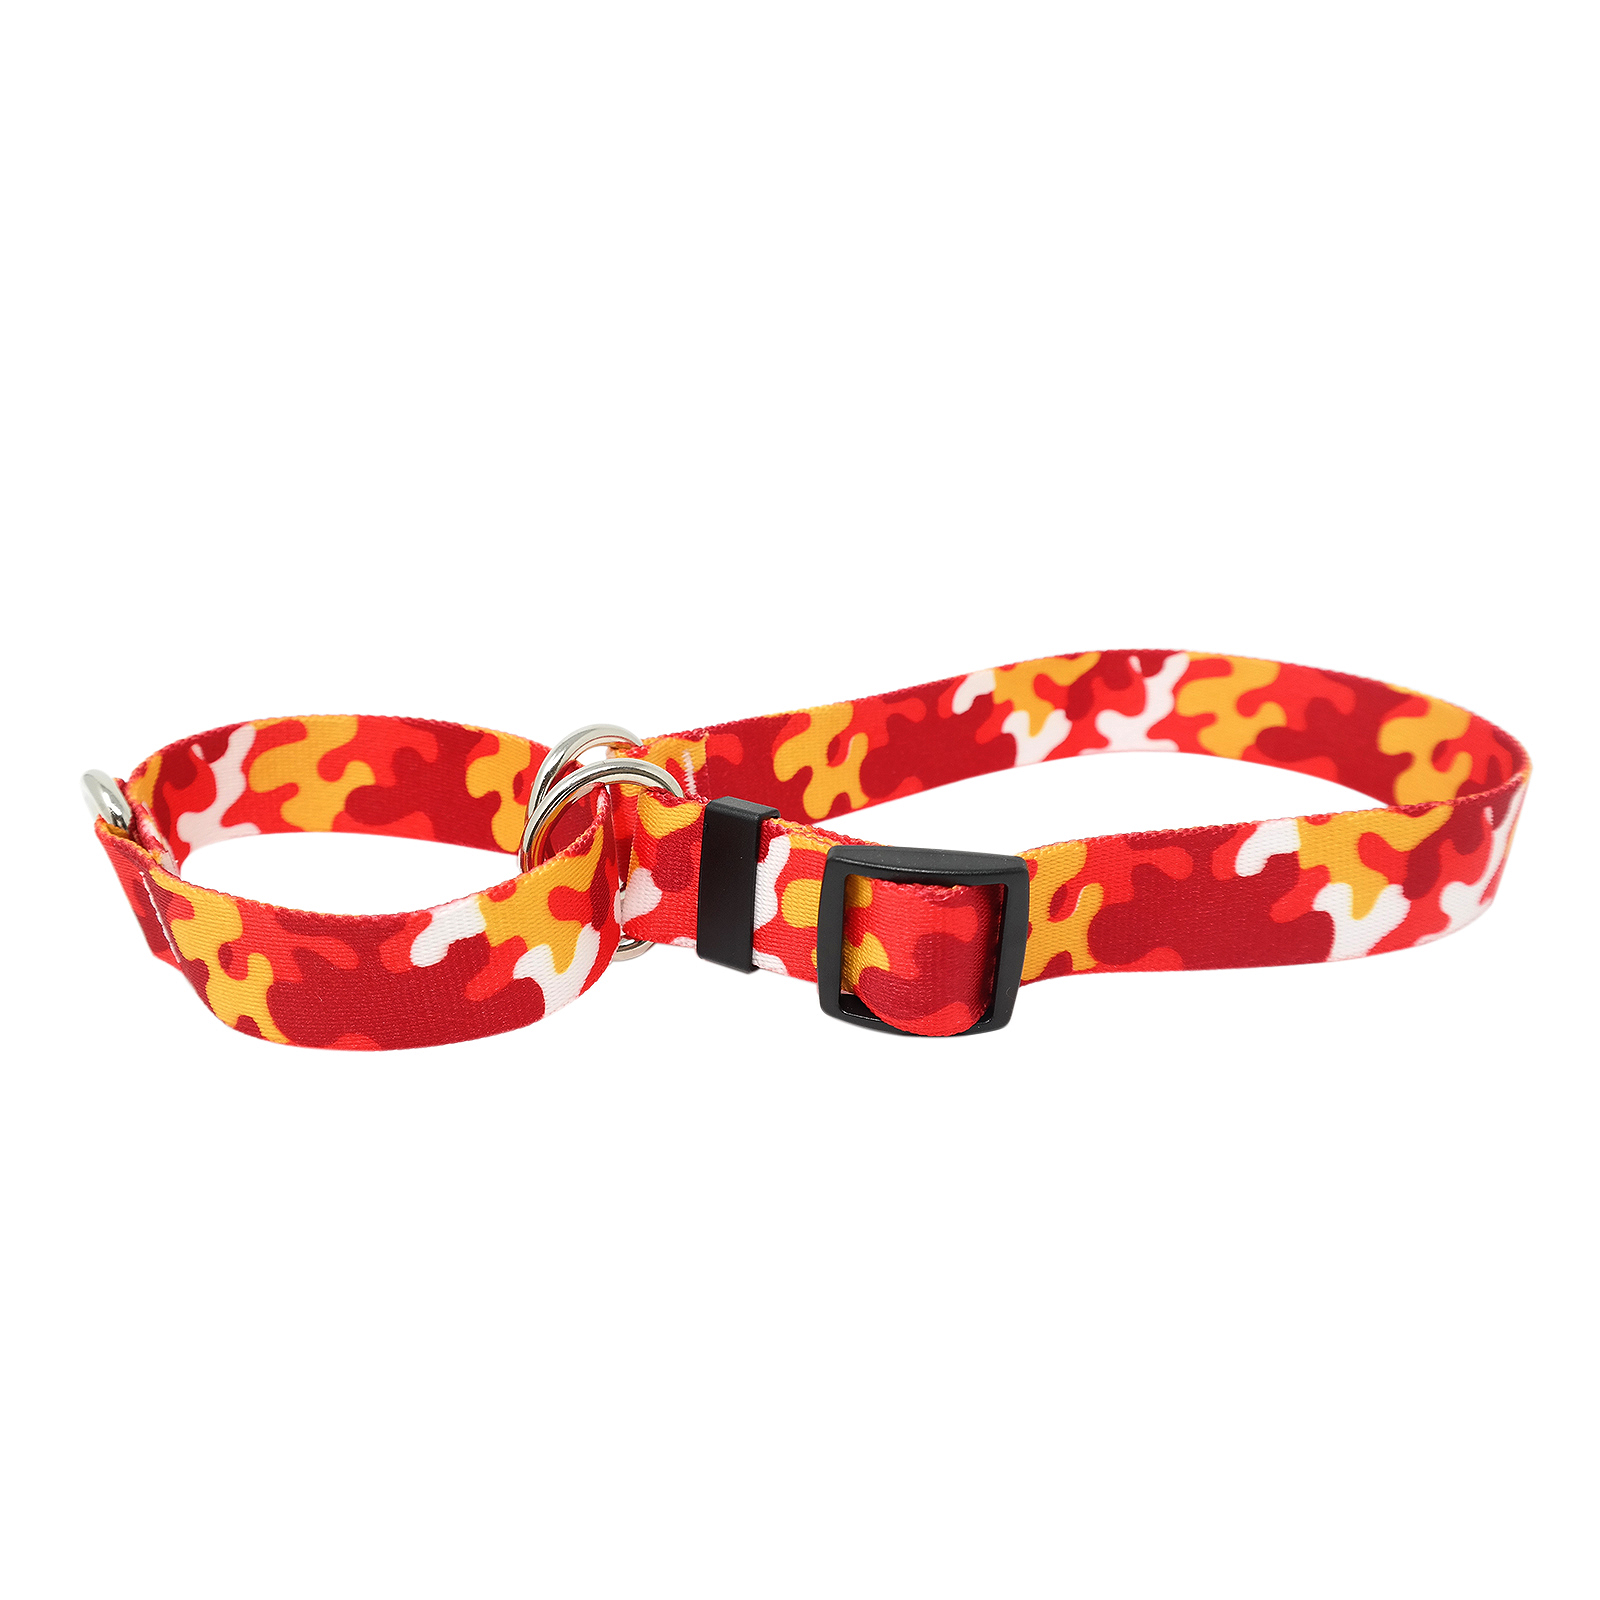 Red & Gold Camo Martingale Collar